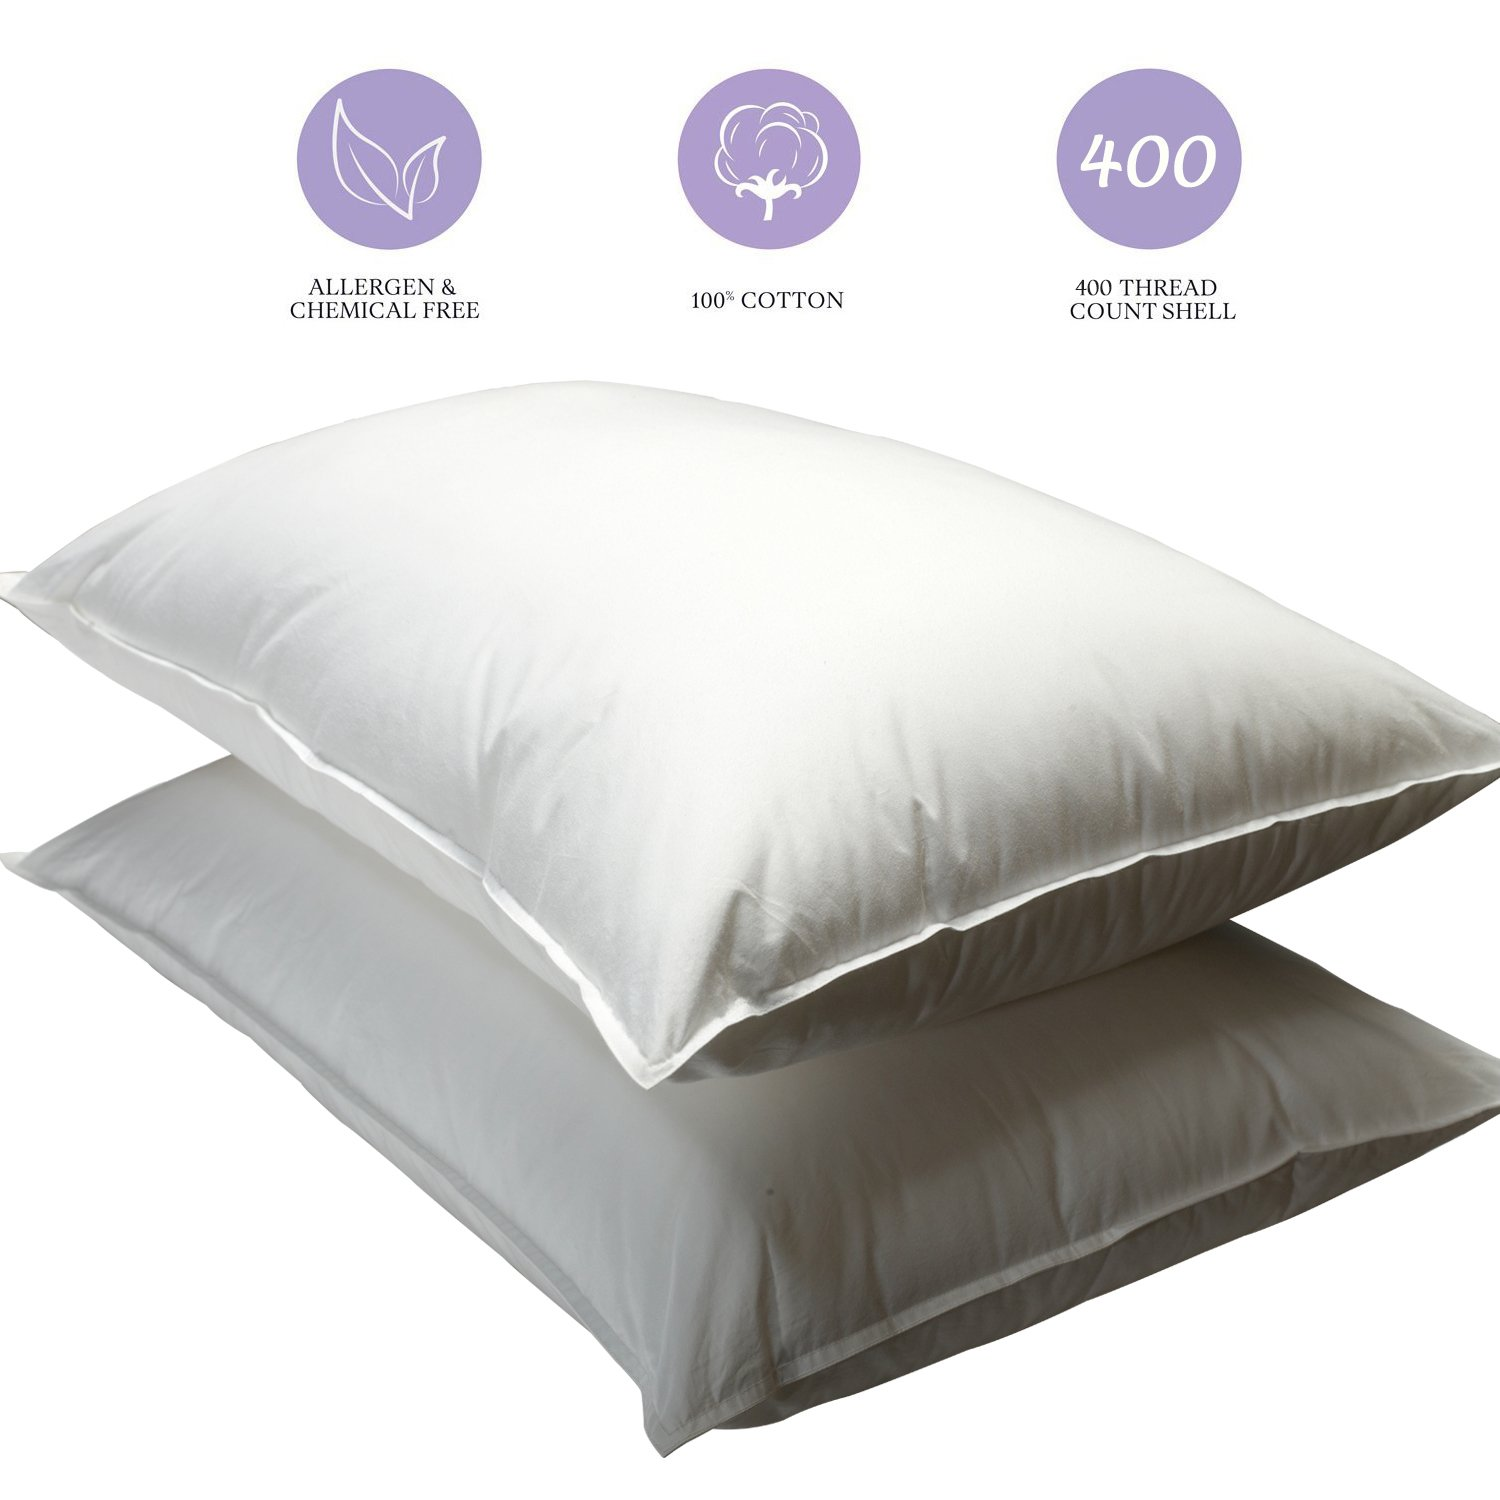 amazoncom yalovo pillows for sleeping 2 pack white pillow 400 thread count 100 egyptian cotton 5star hotel pillows 100 guarantee queen